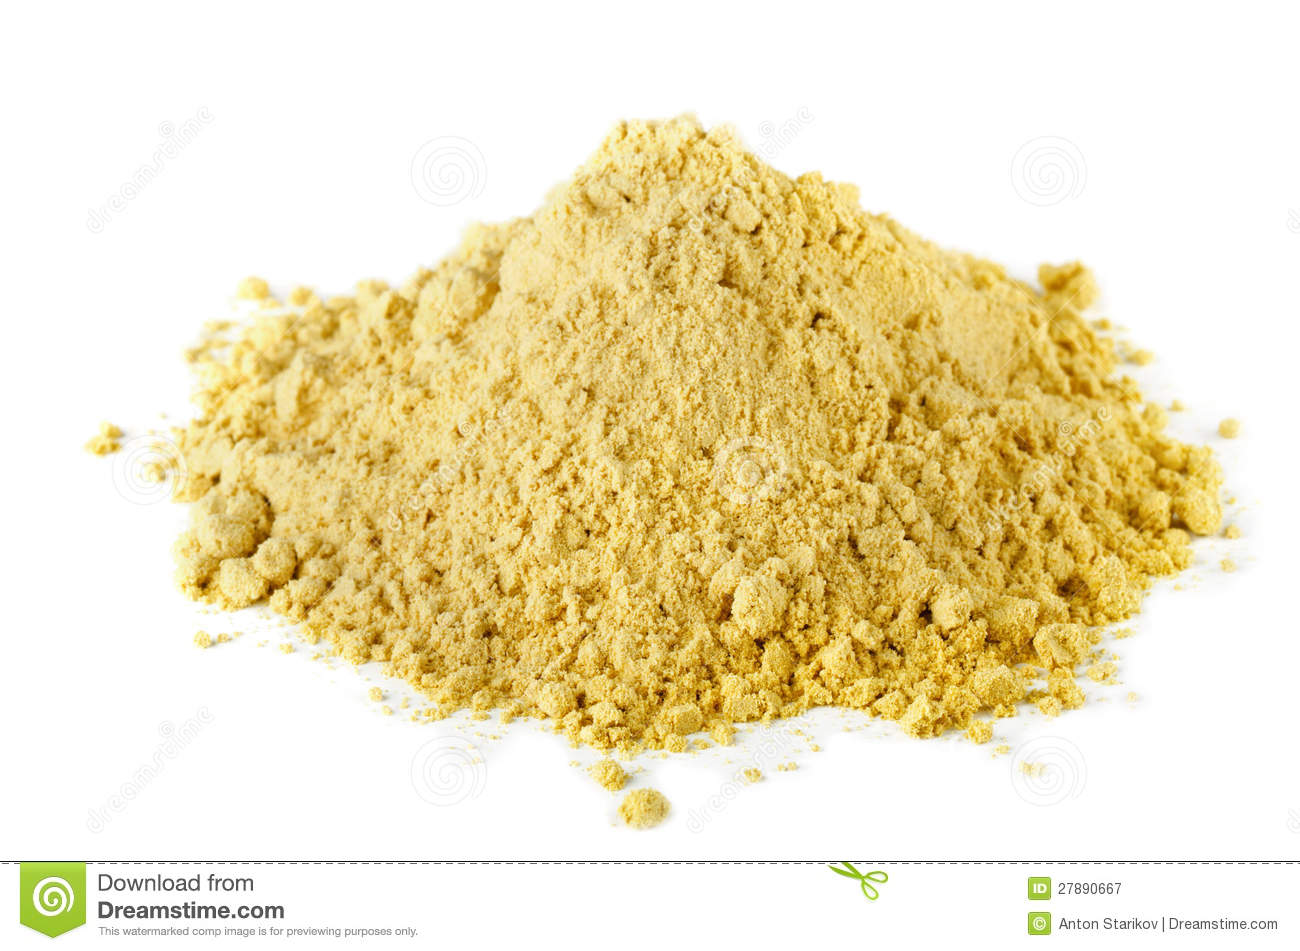 how to make dry mustard powder